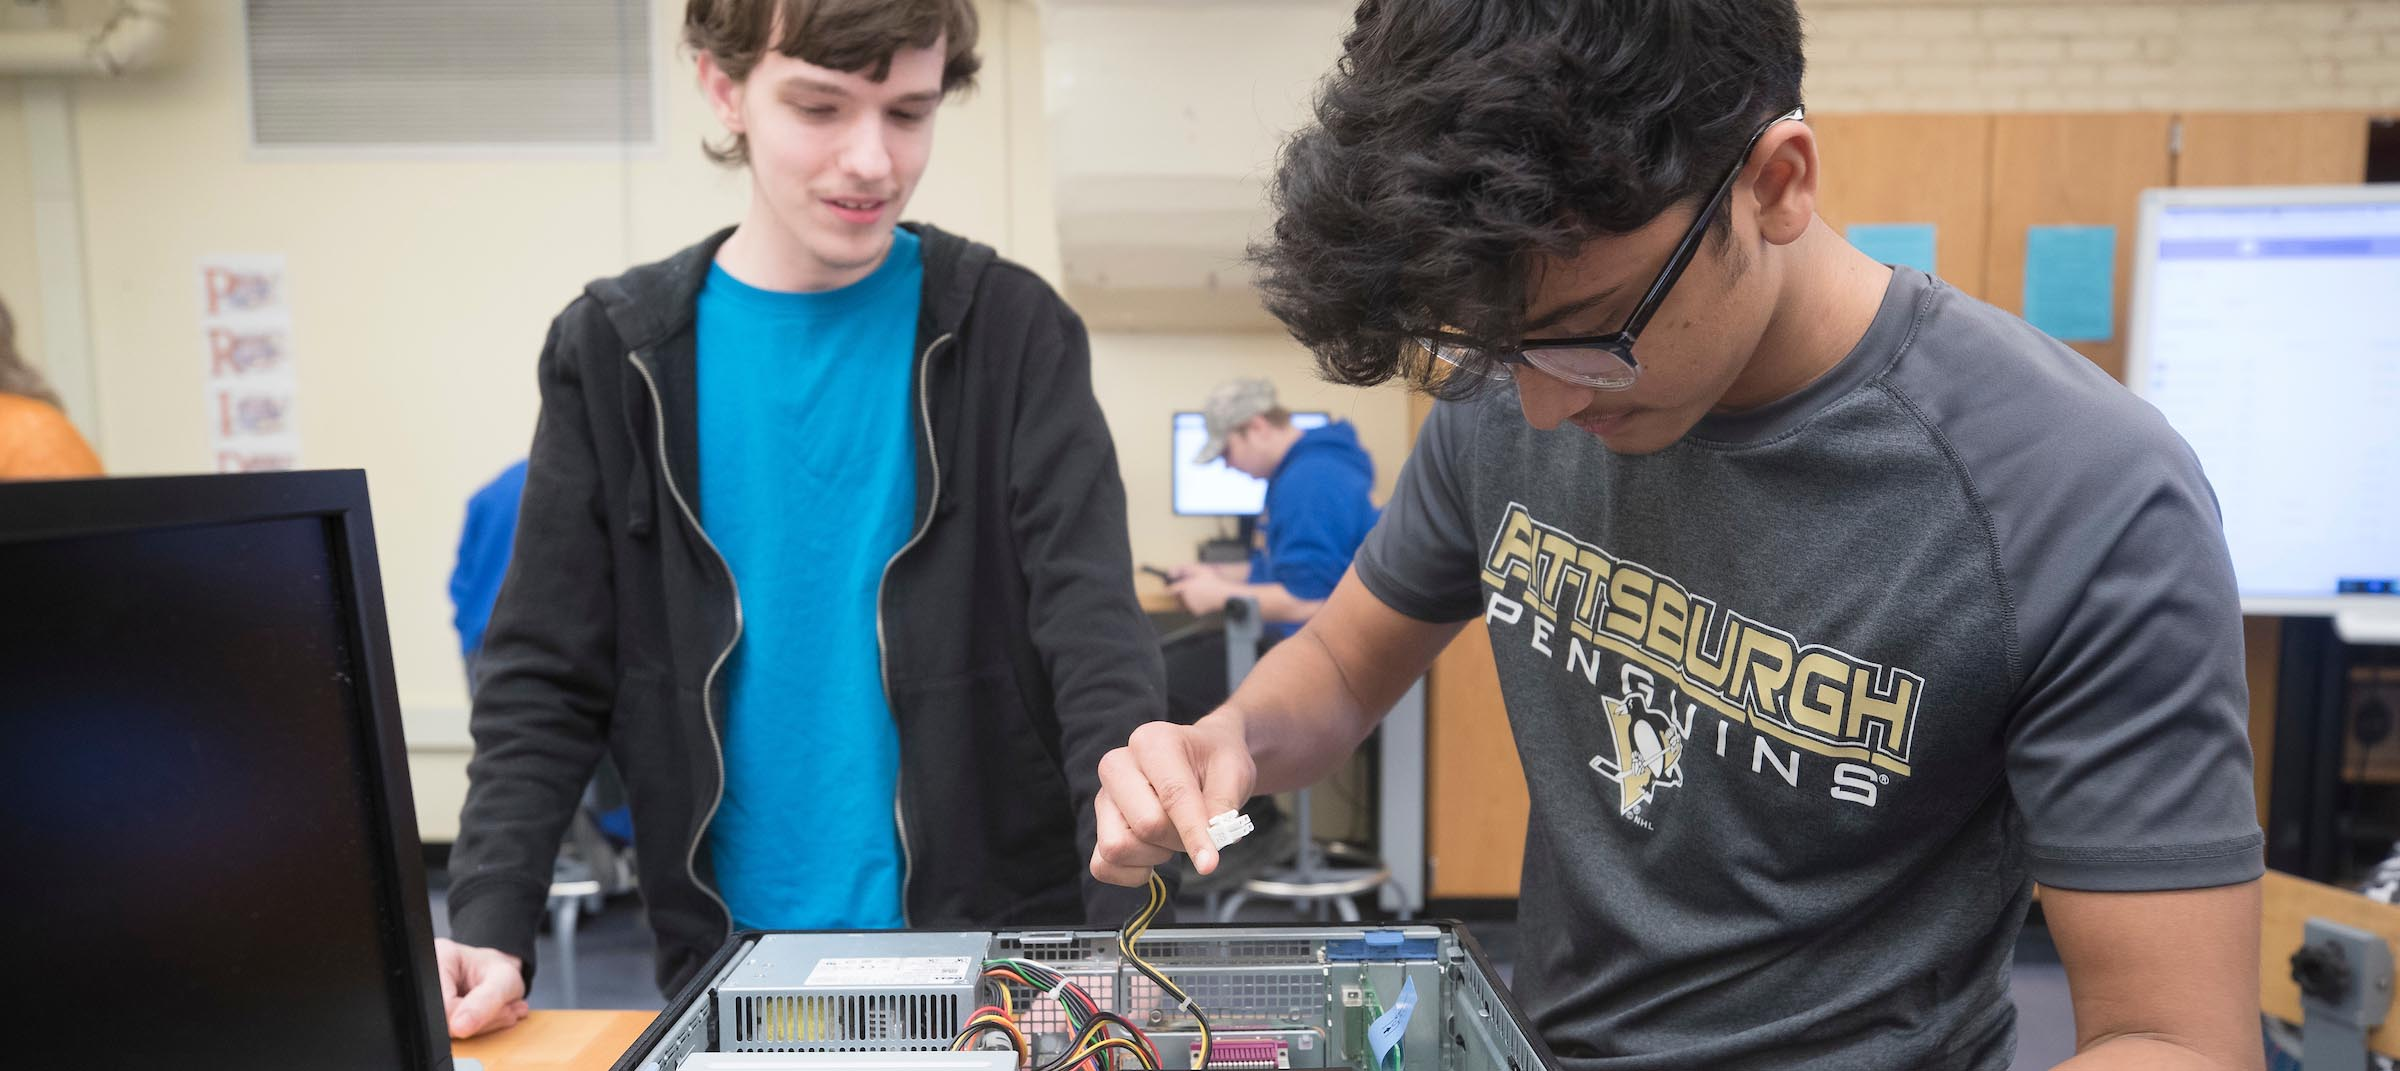 Students in Technology classroom working on a computer